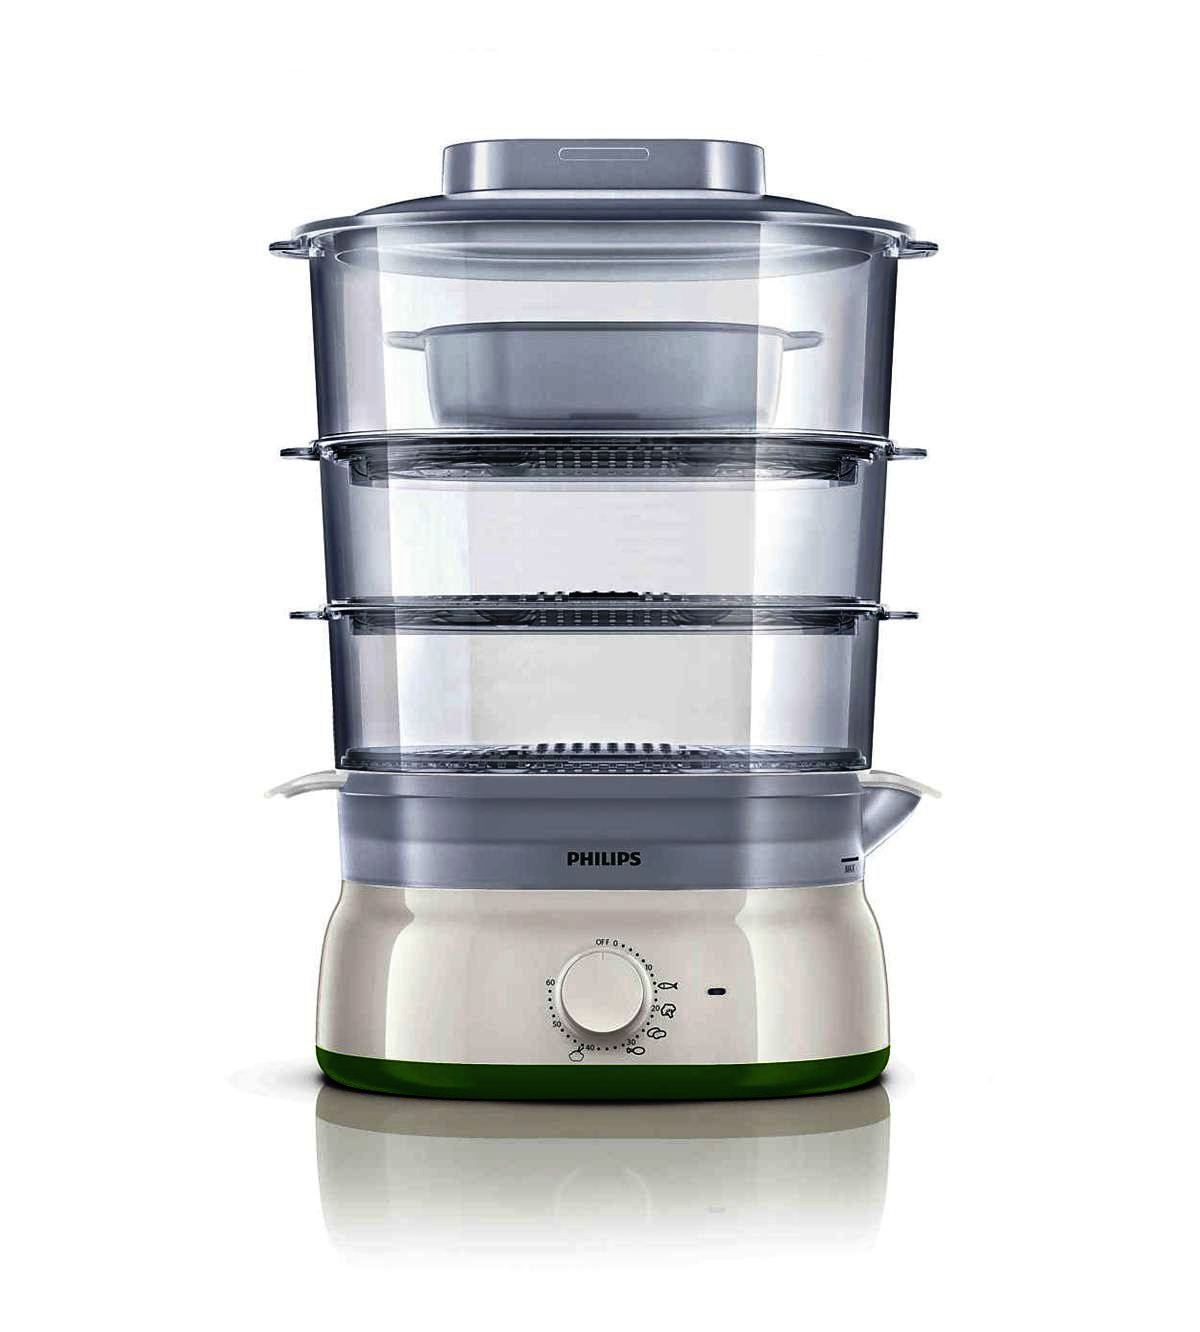 Philips HD9125 Food Steamer Review